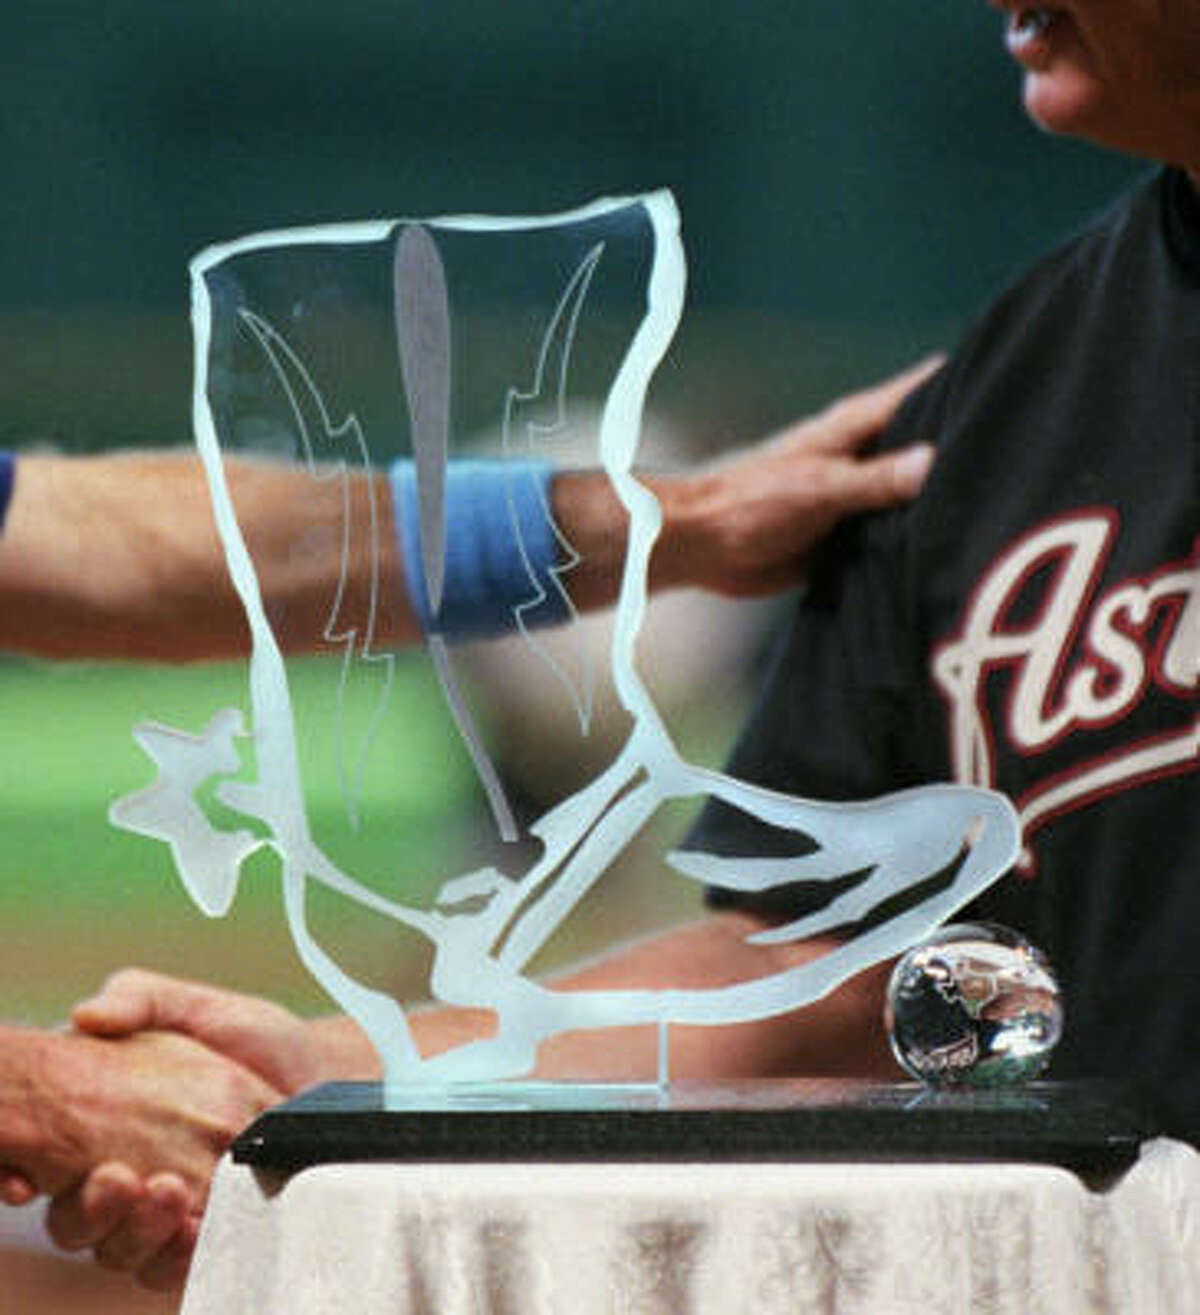 May 22 The in-state Rangers visit Minute Maid Park to begin the battle for the Silver Boot.